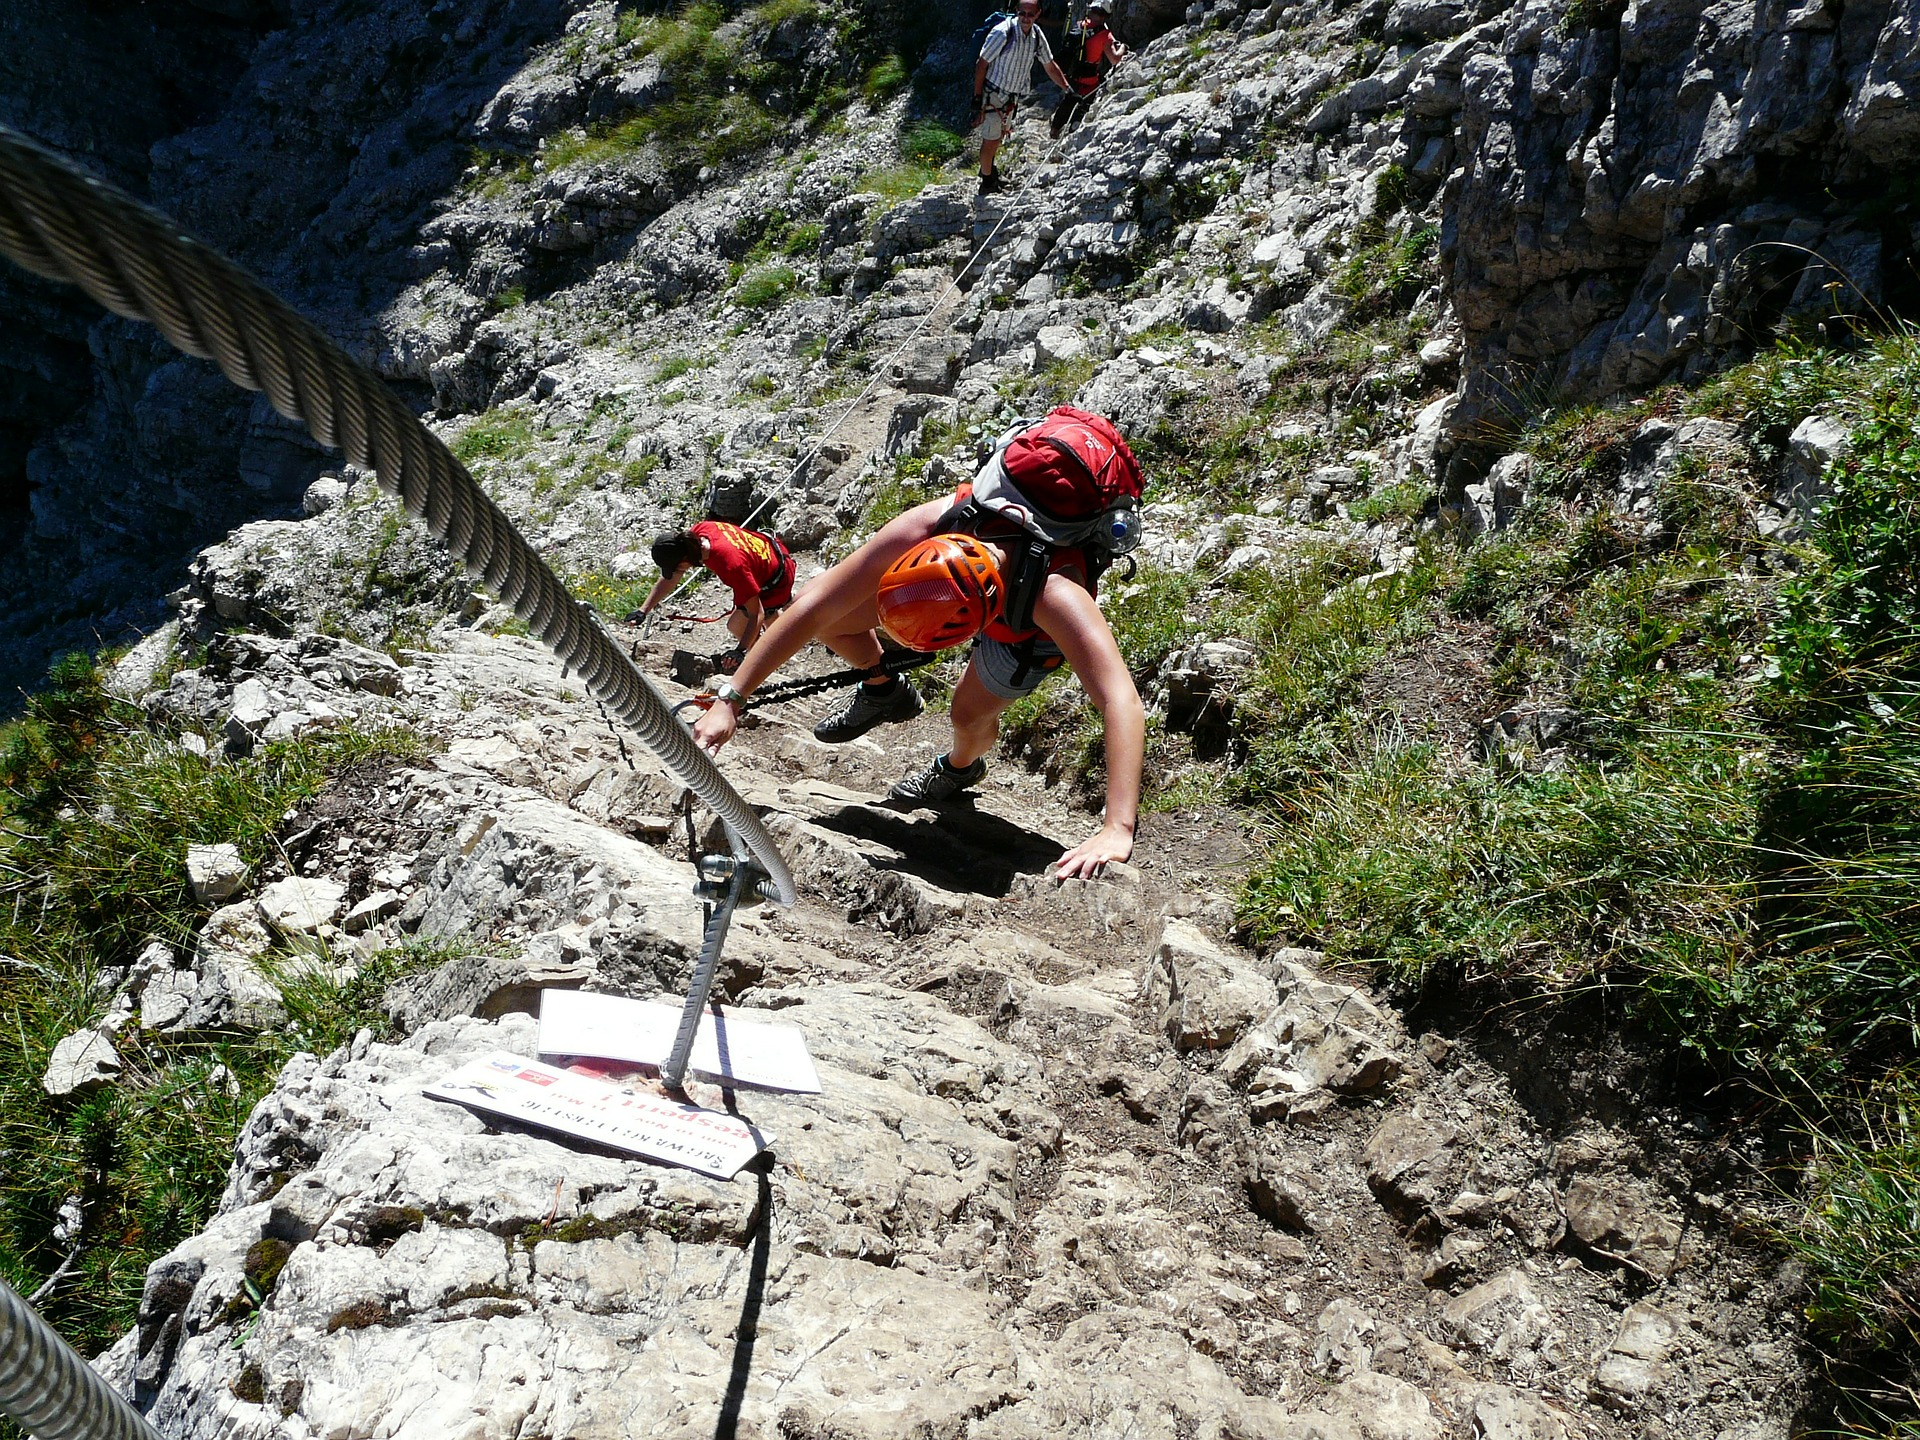 Via_Ferrata_CC0.jpg?1544806839